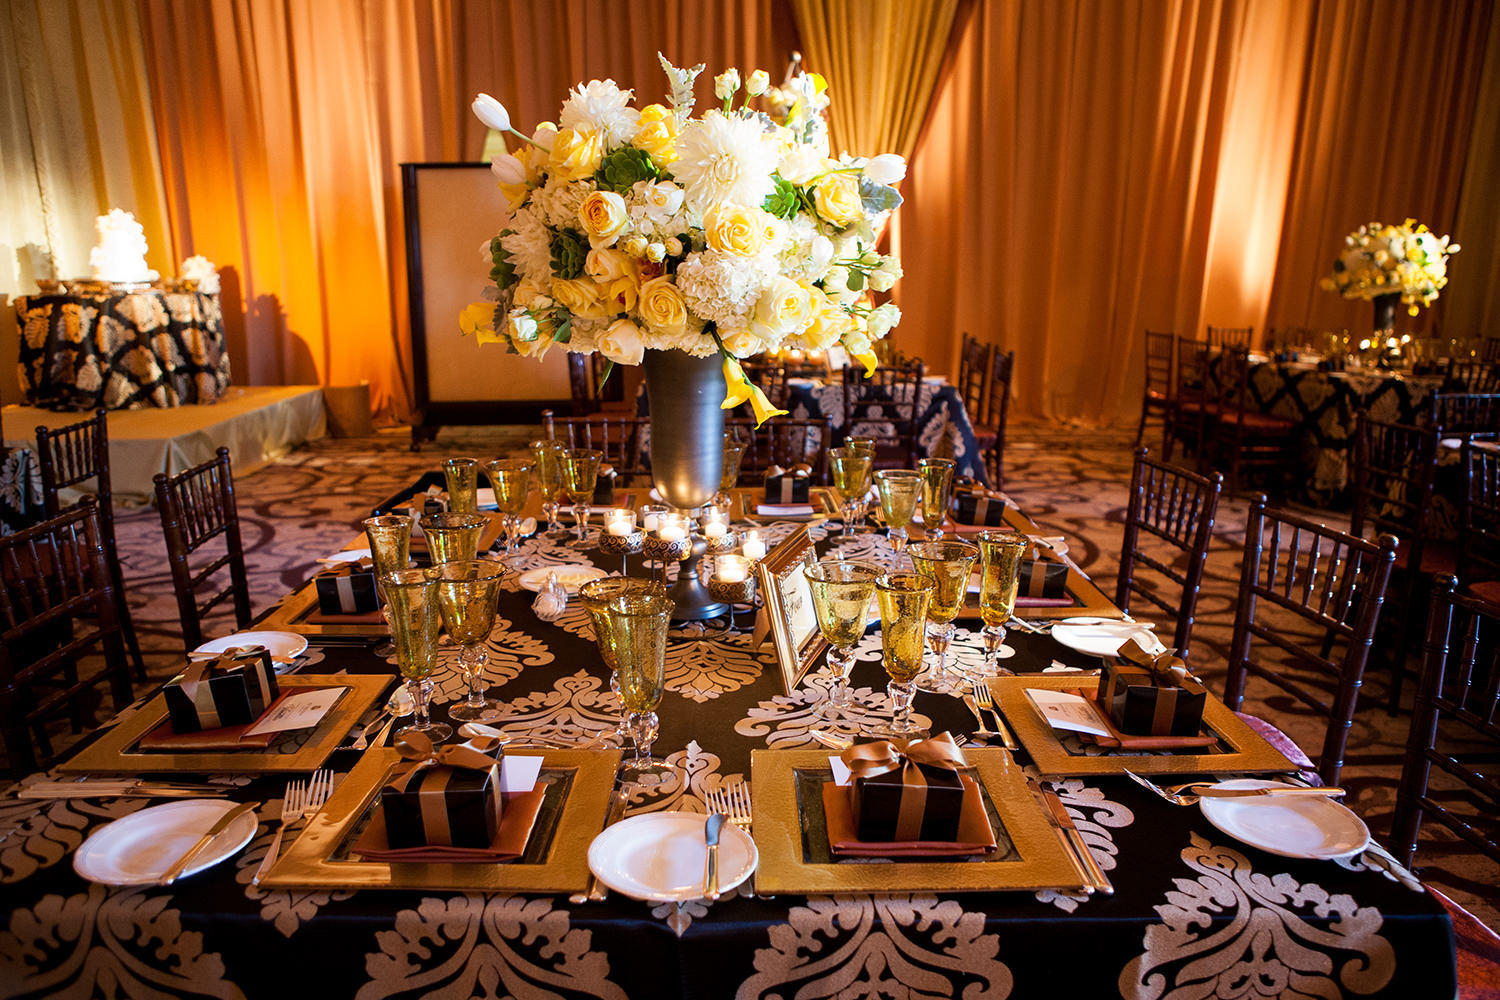 Ornate and richly colored table settings at a wedding reception